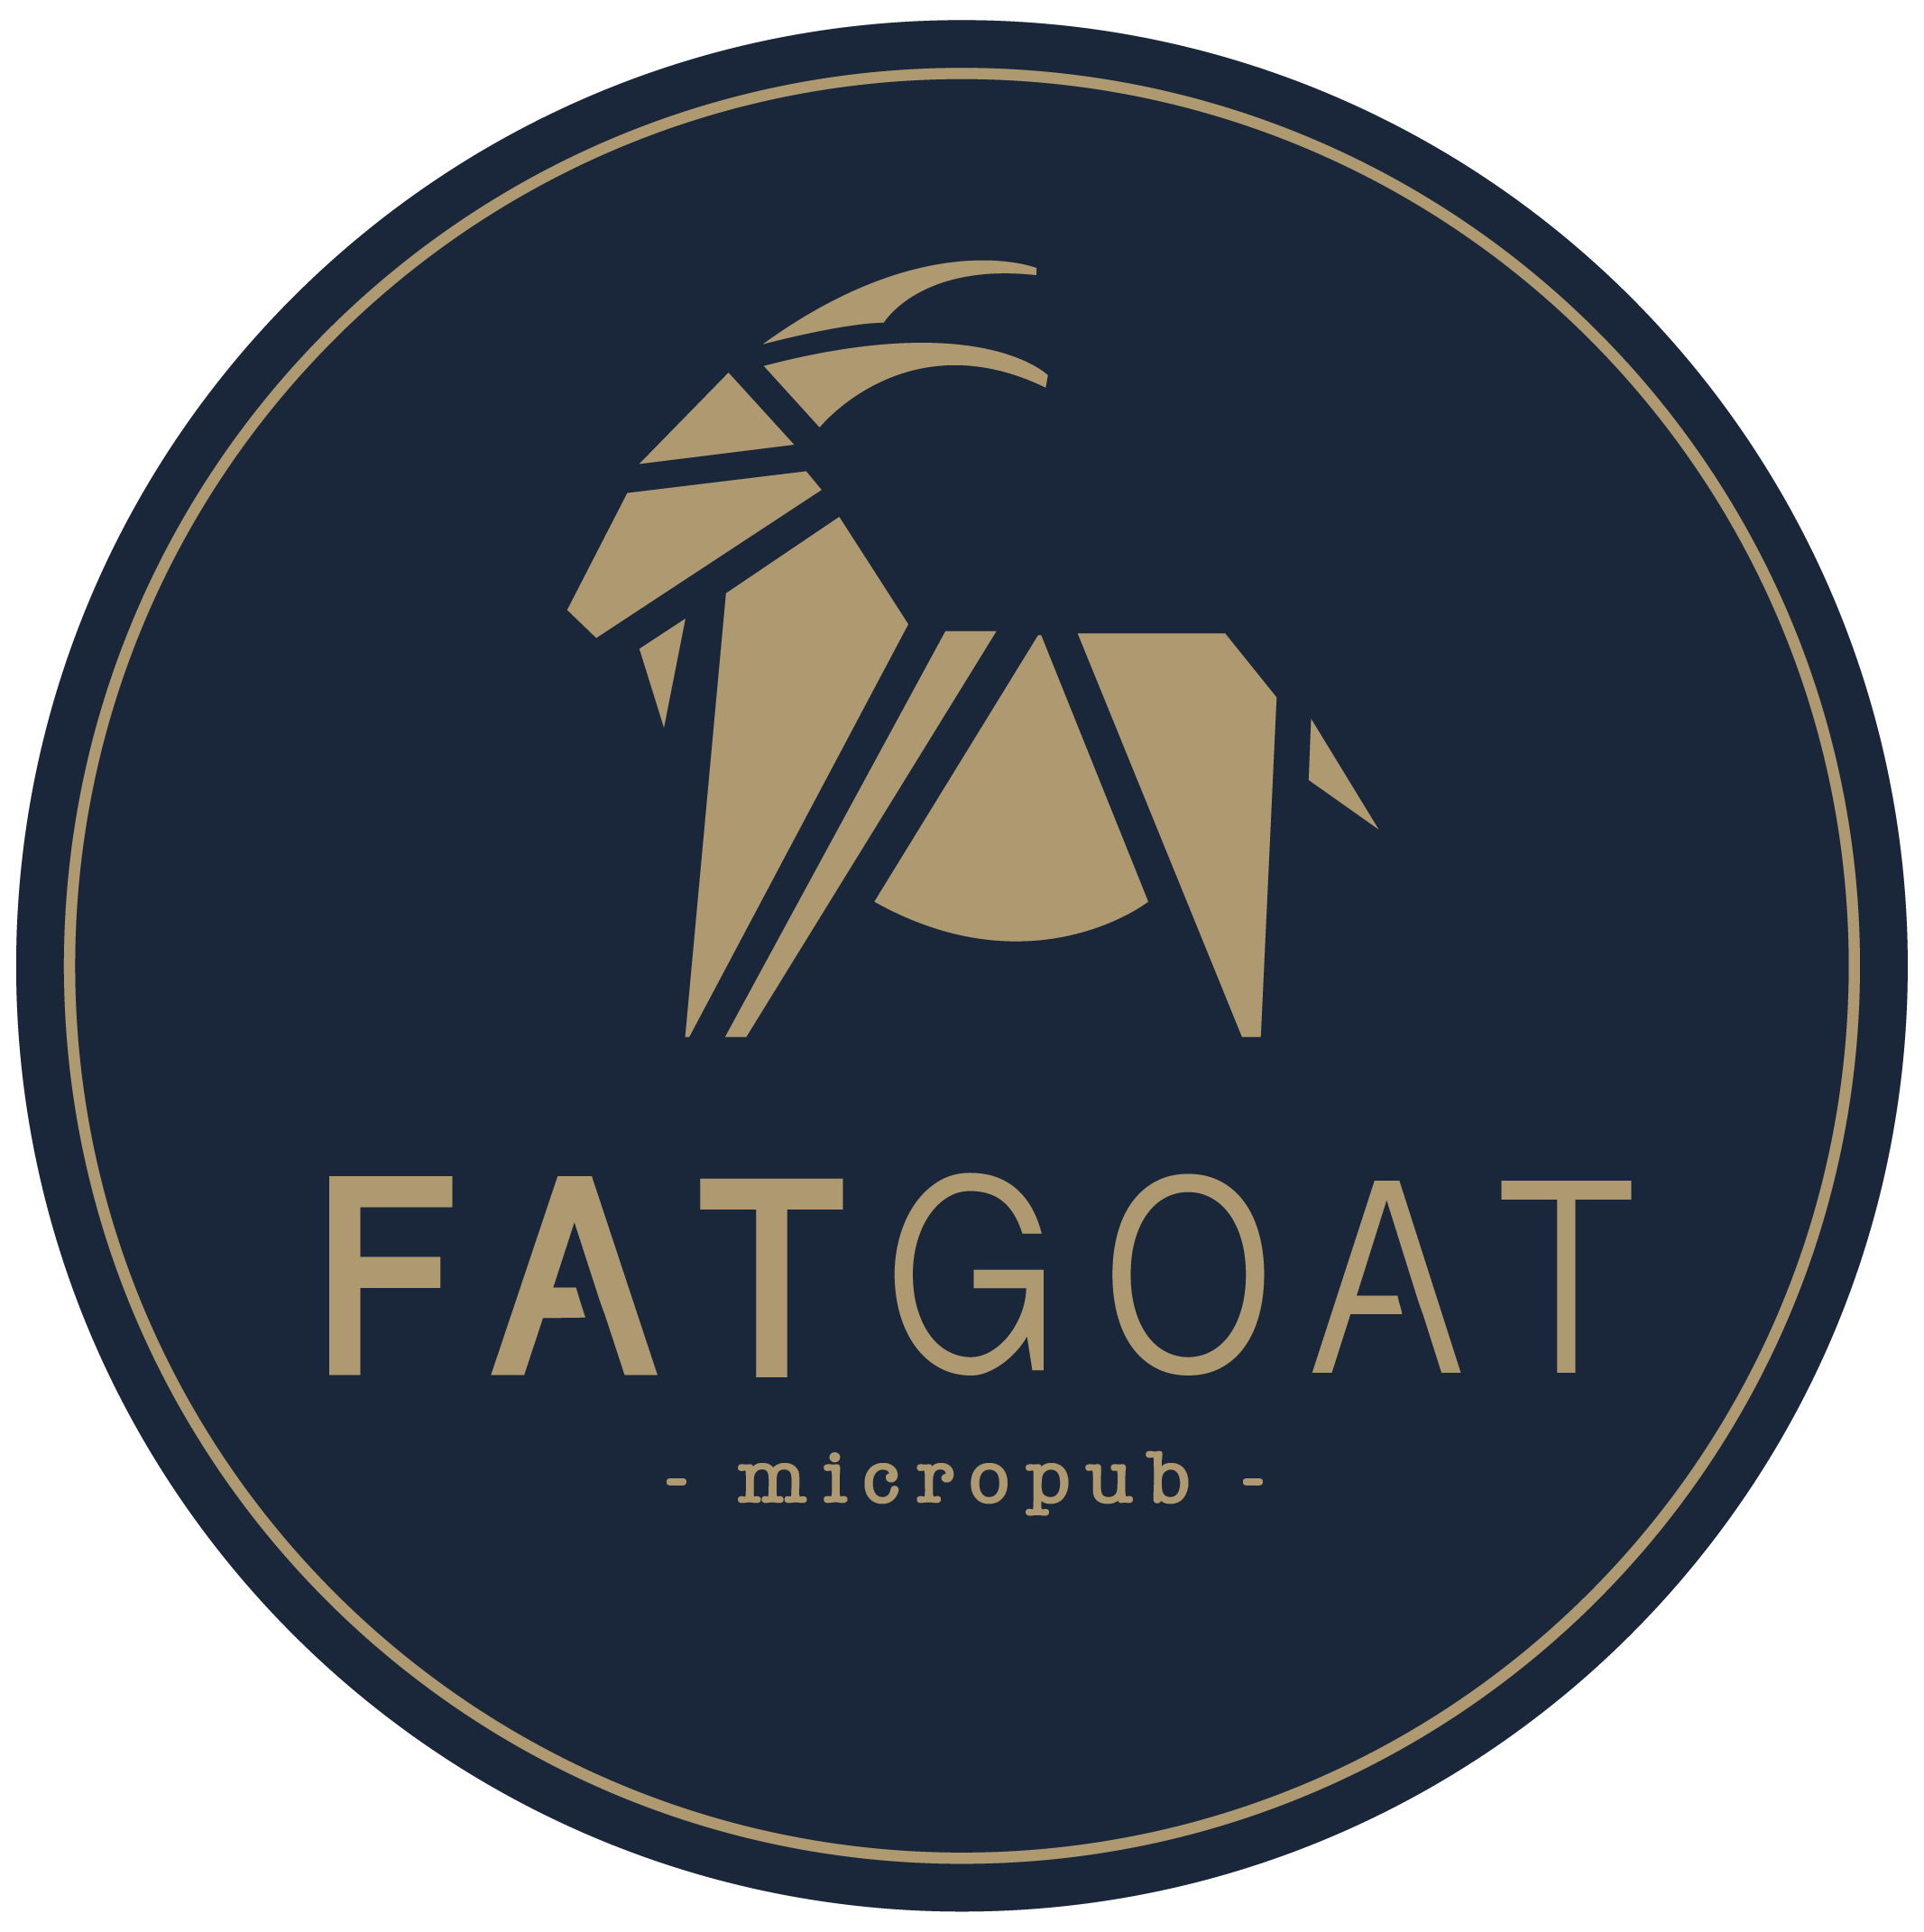 The Fat Goat Upwey